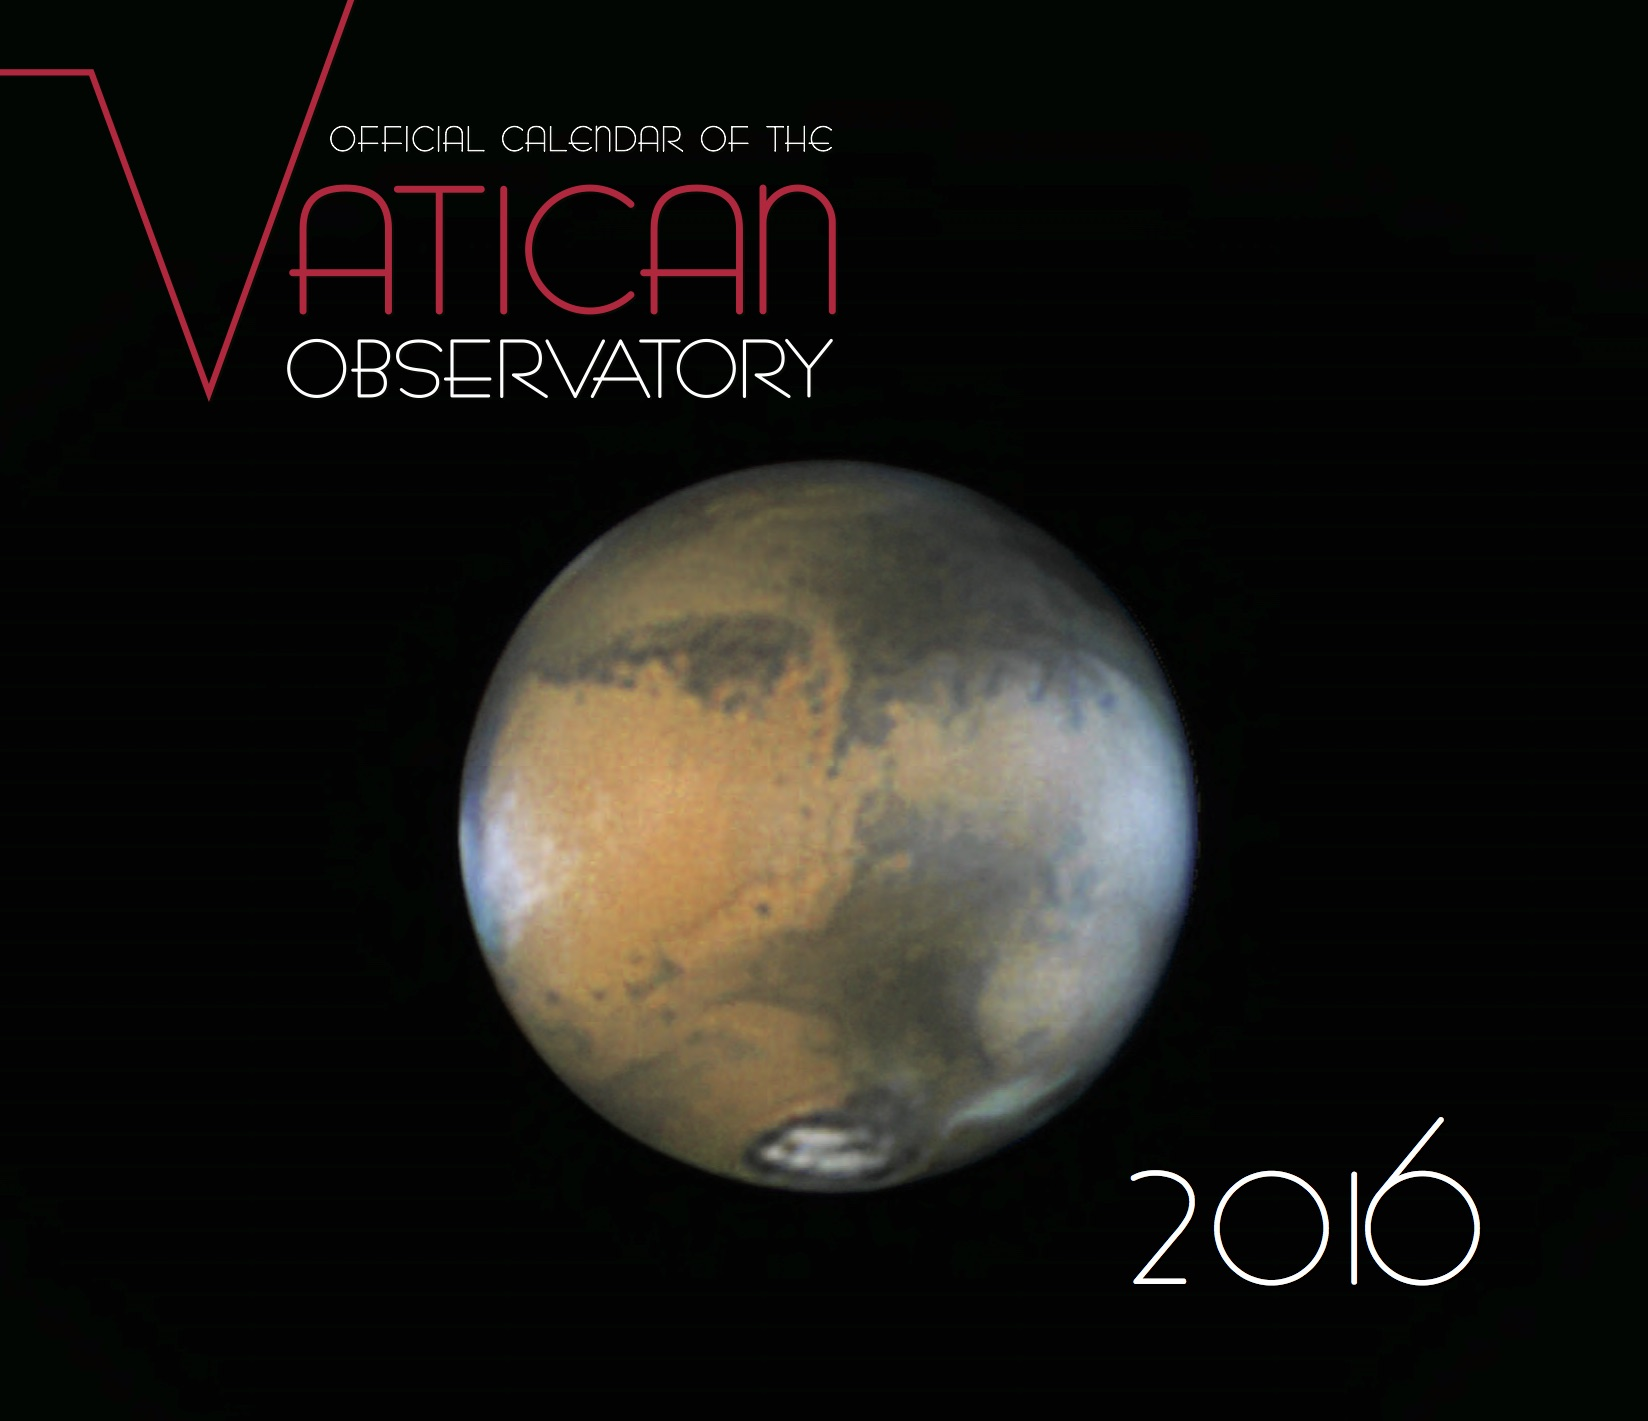 The cover of this year's calendar features an image of Mars by Damian Peach